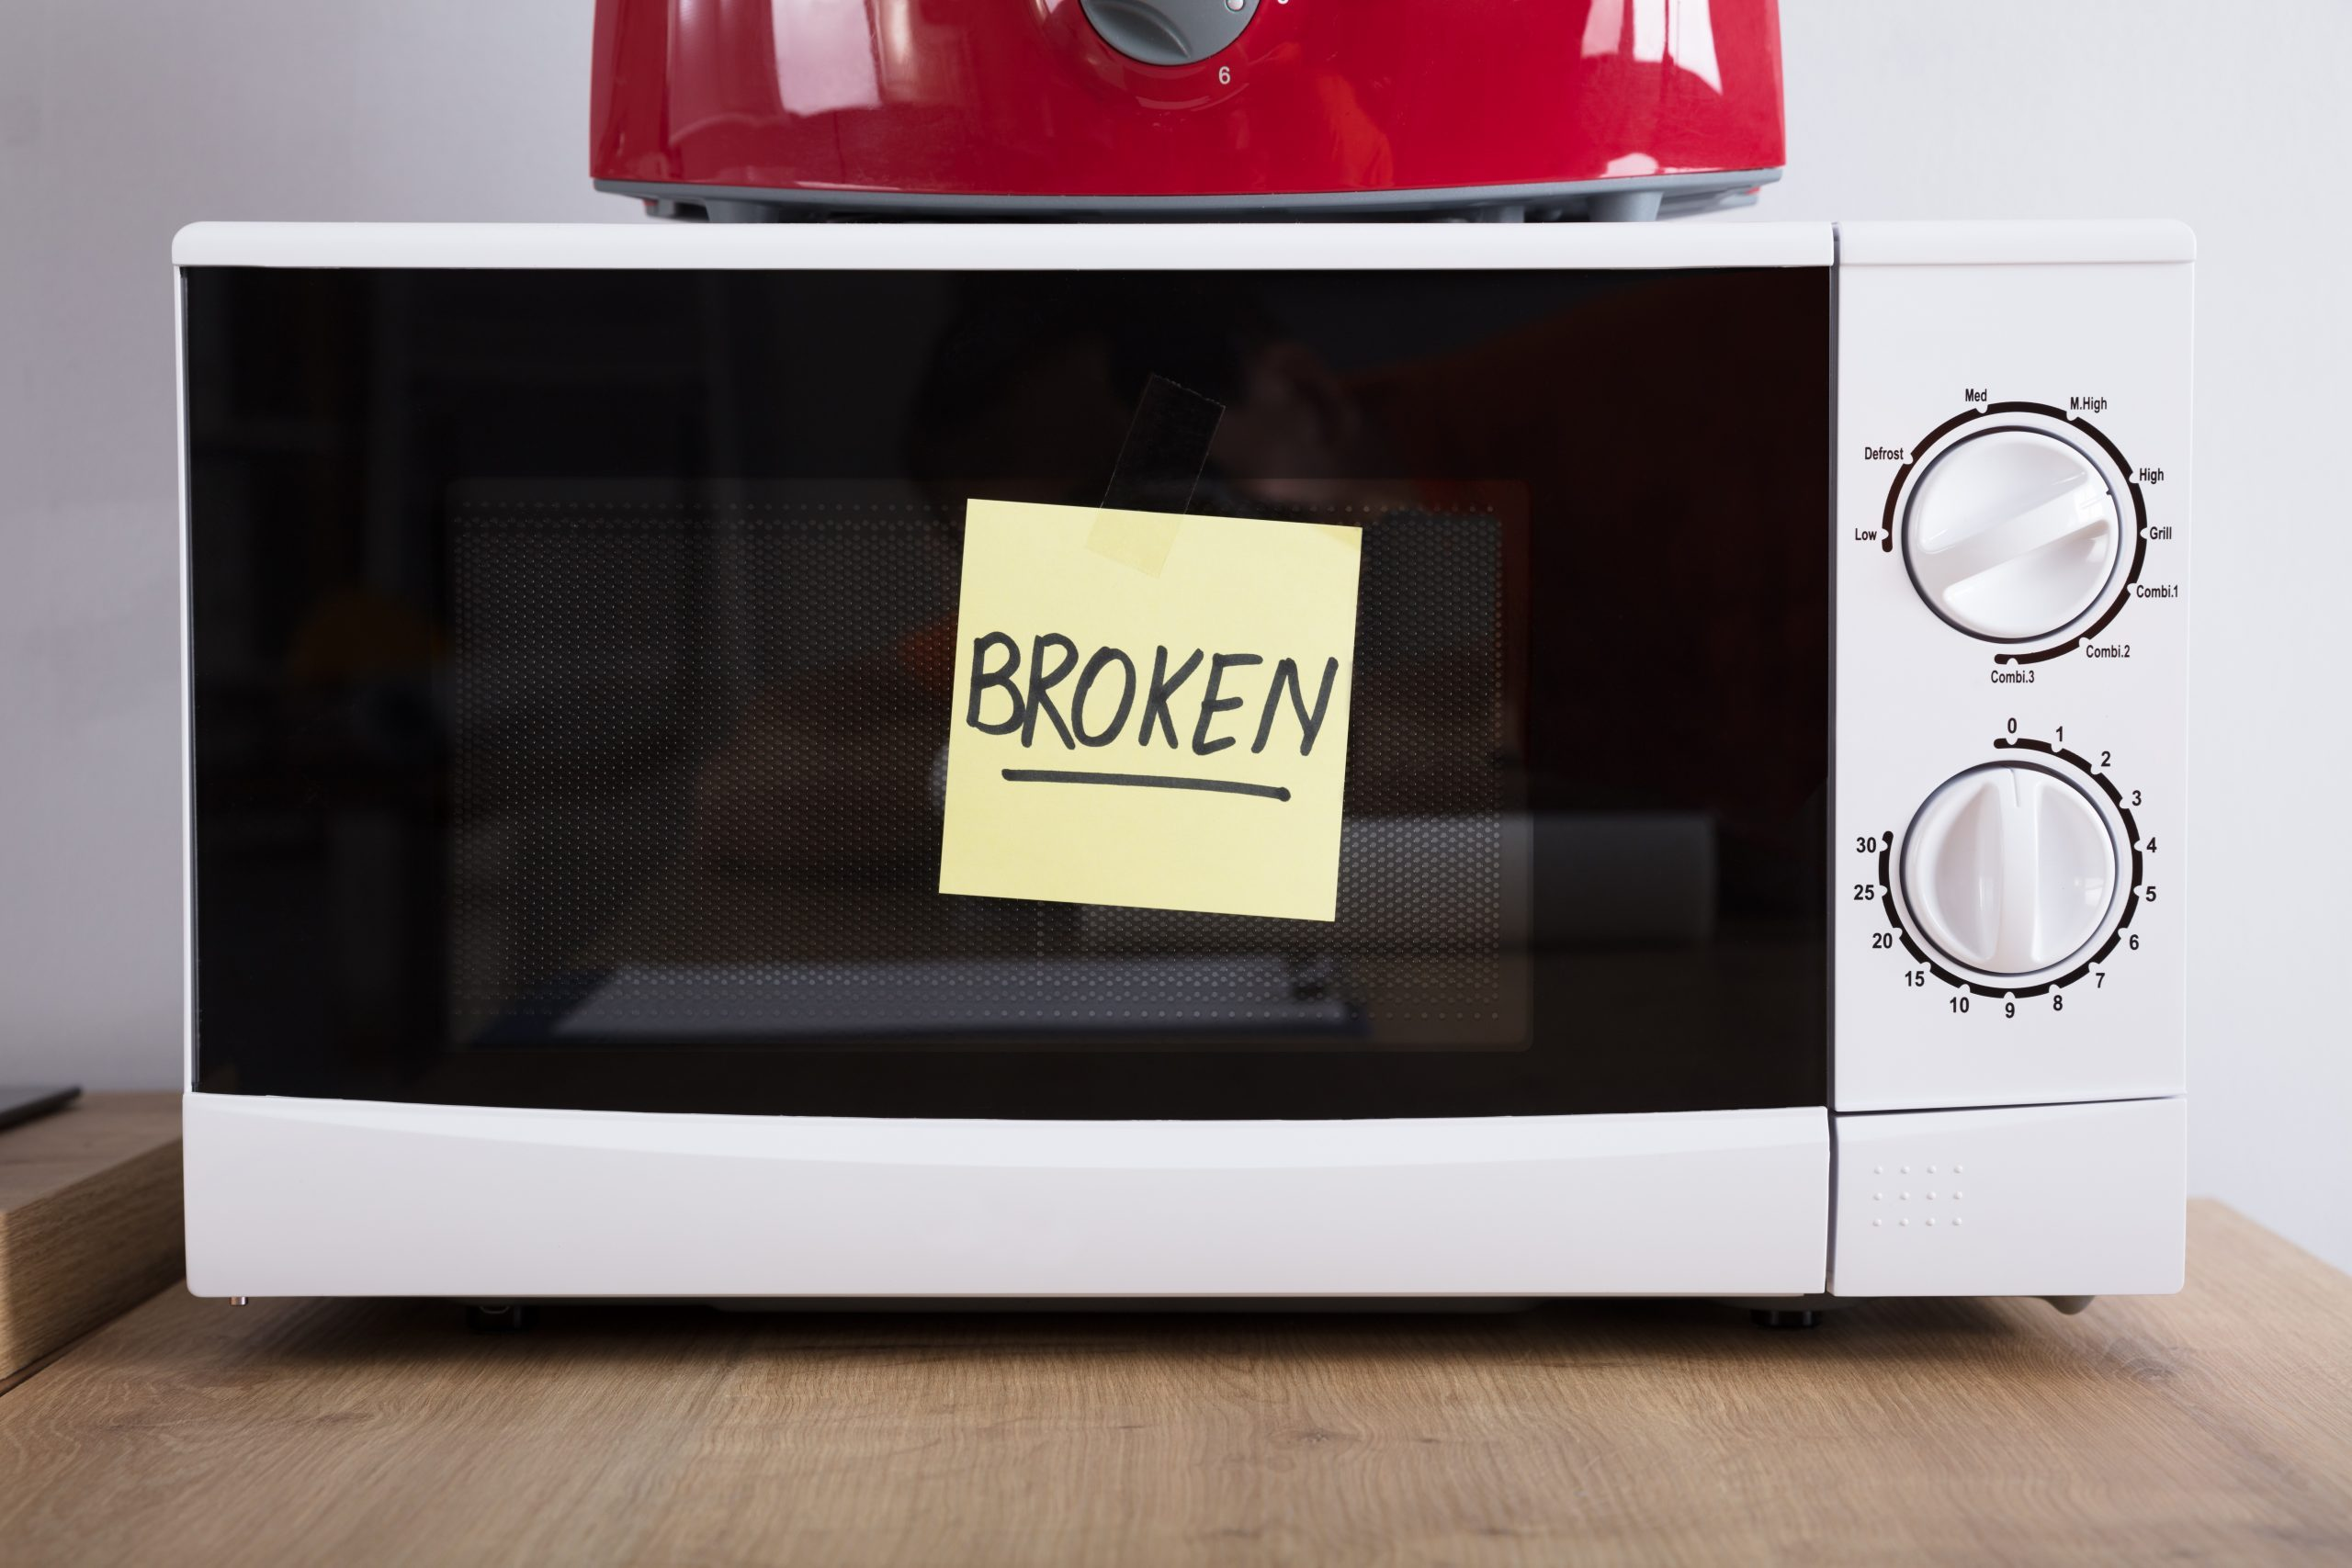 microwave problems you ll regret